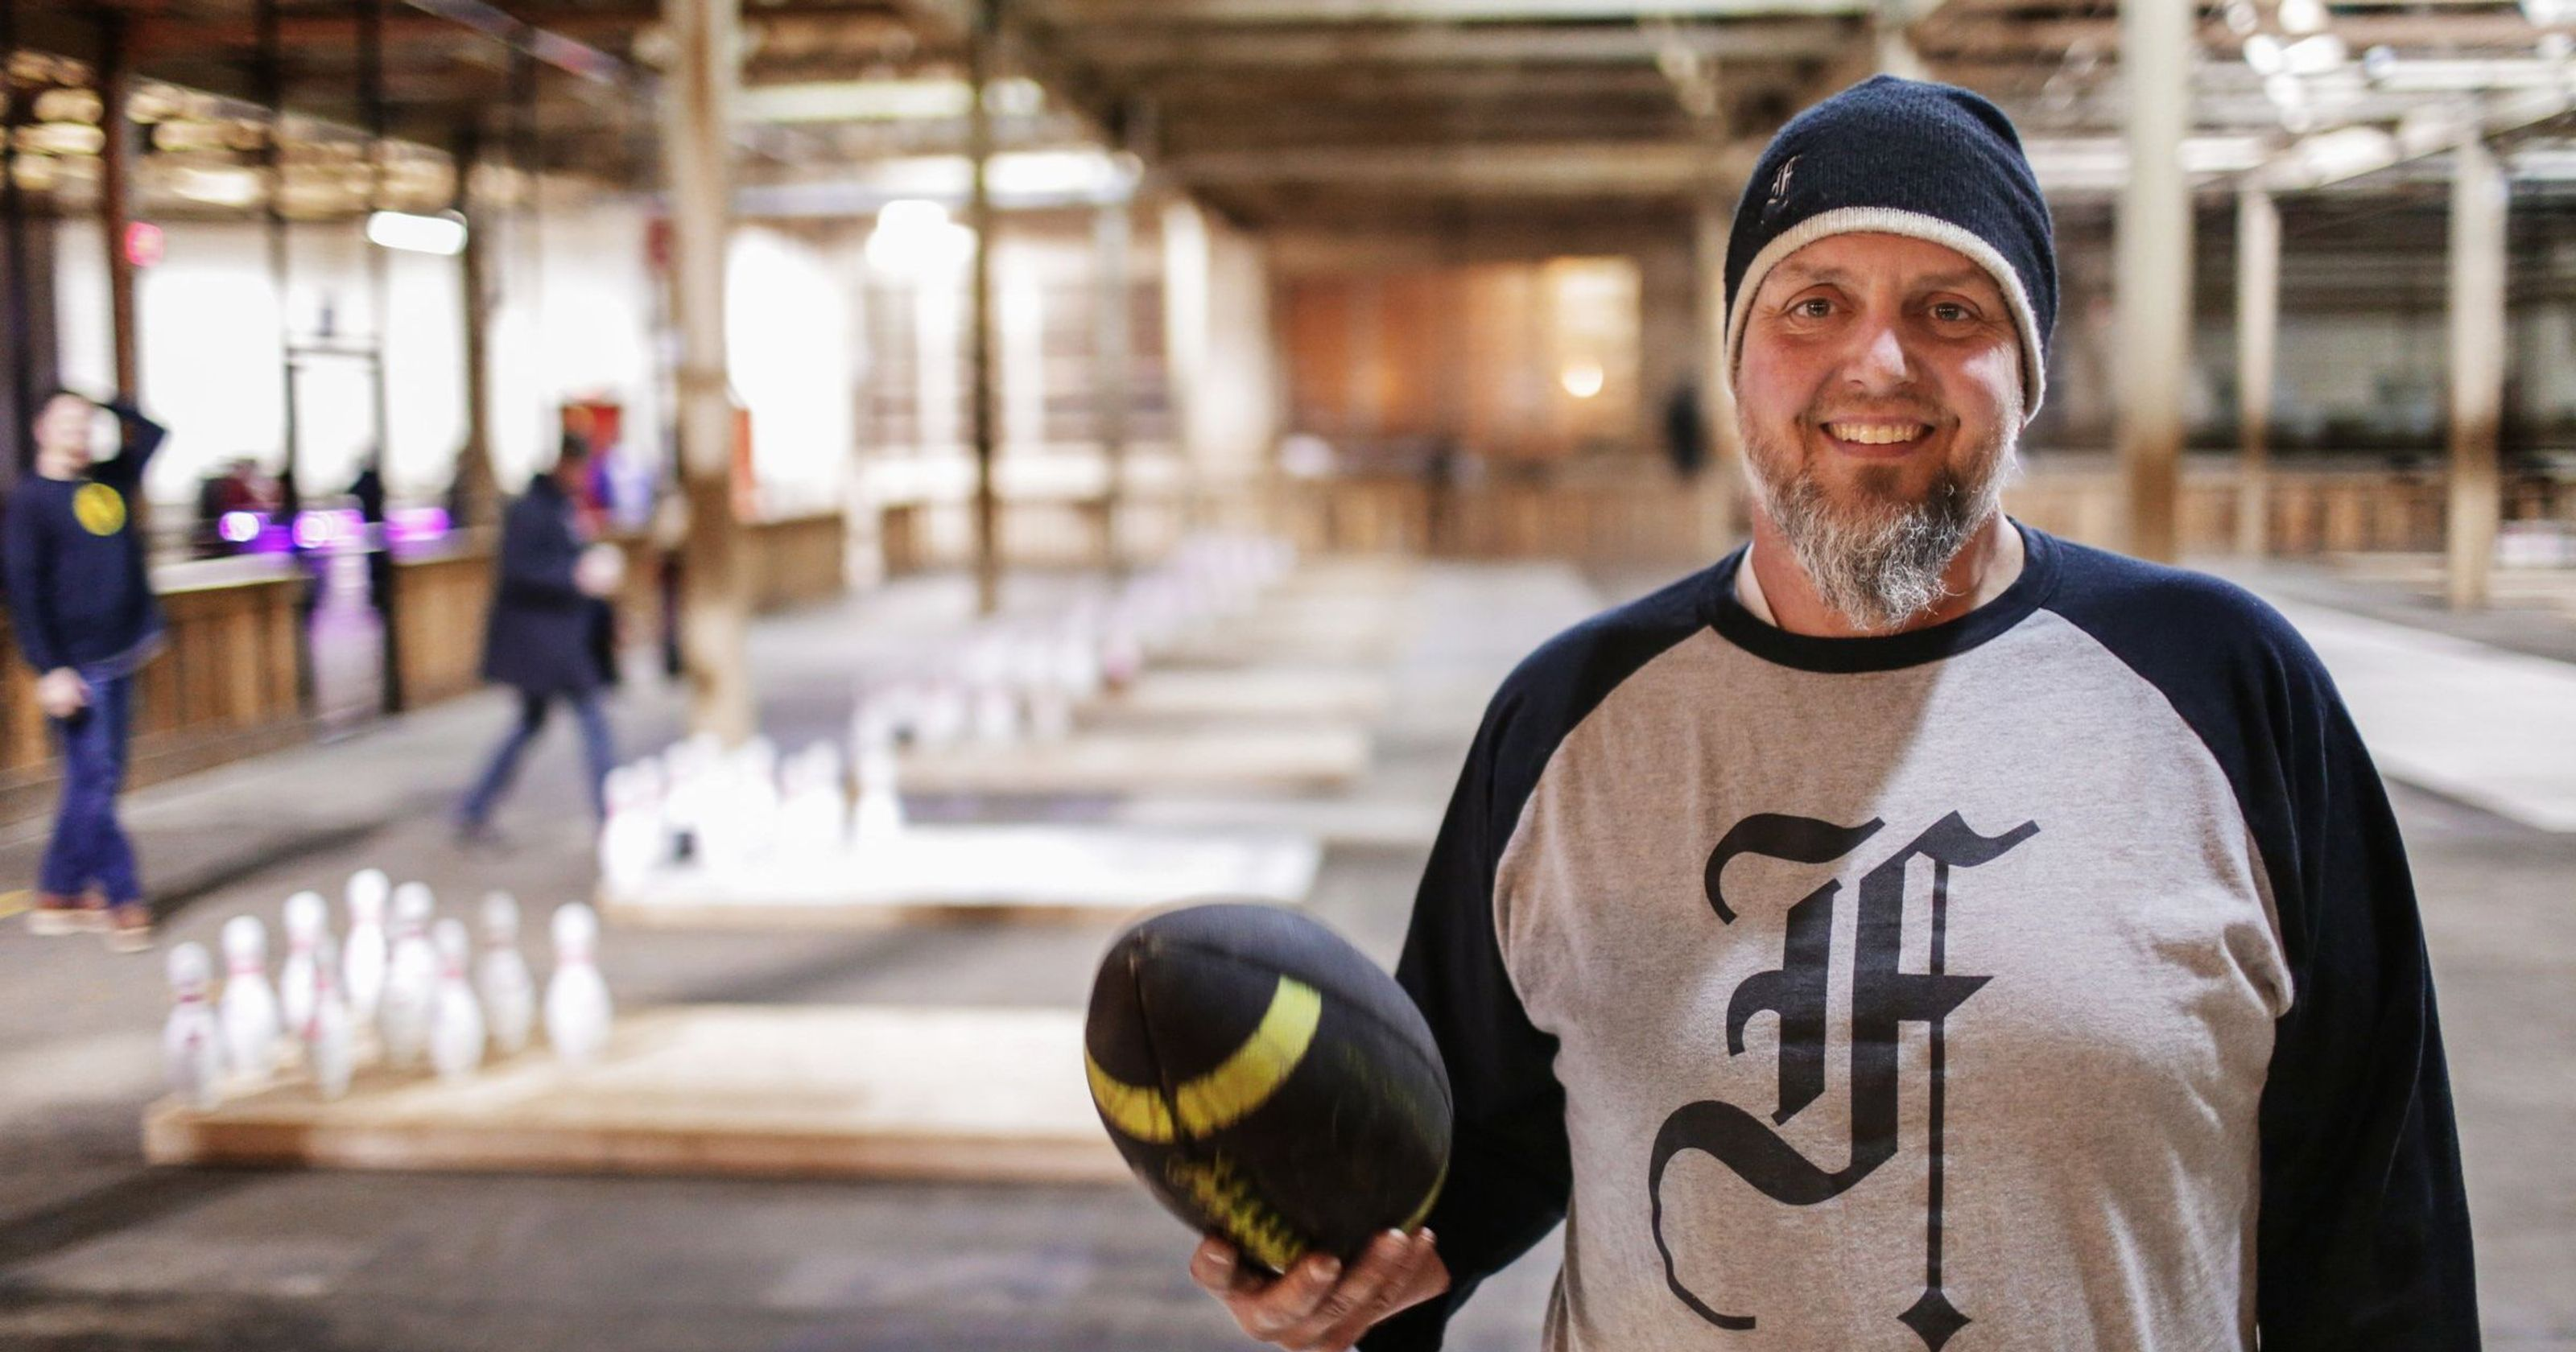 Image of Chris Hutt, owner of the Fowling Warehouse